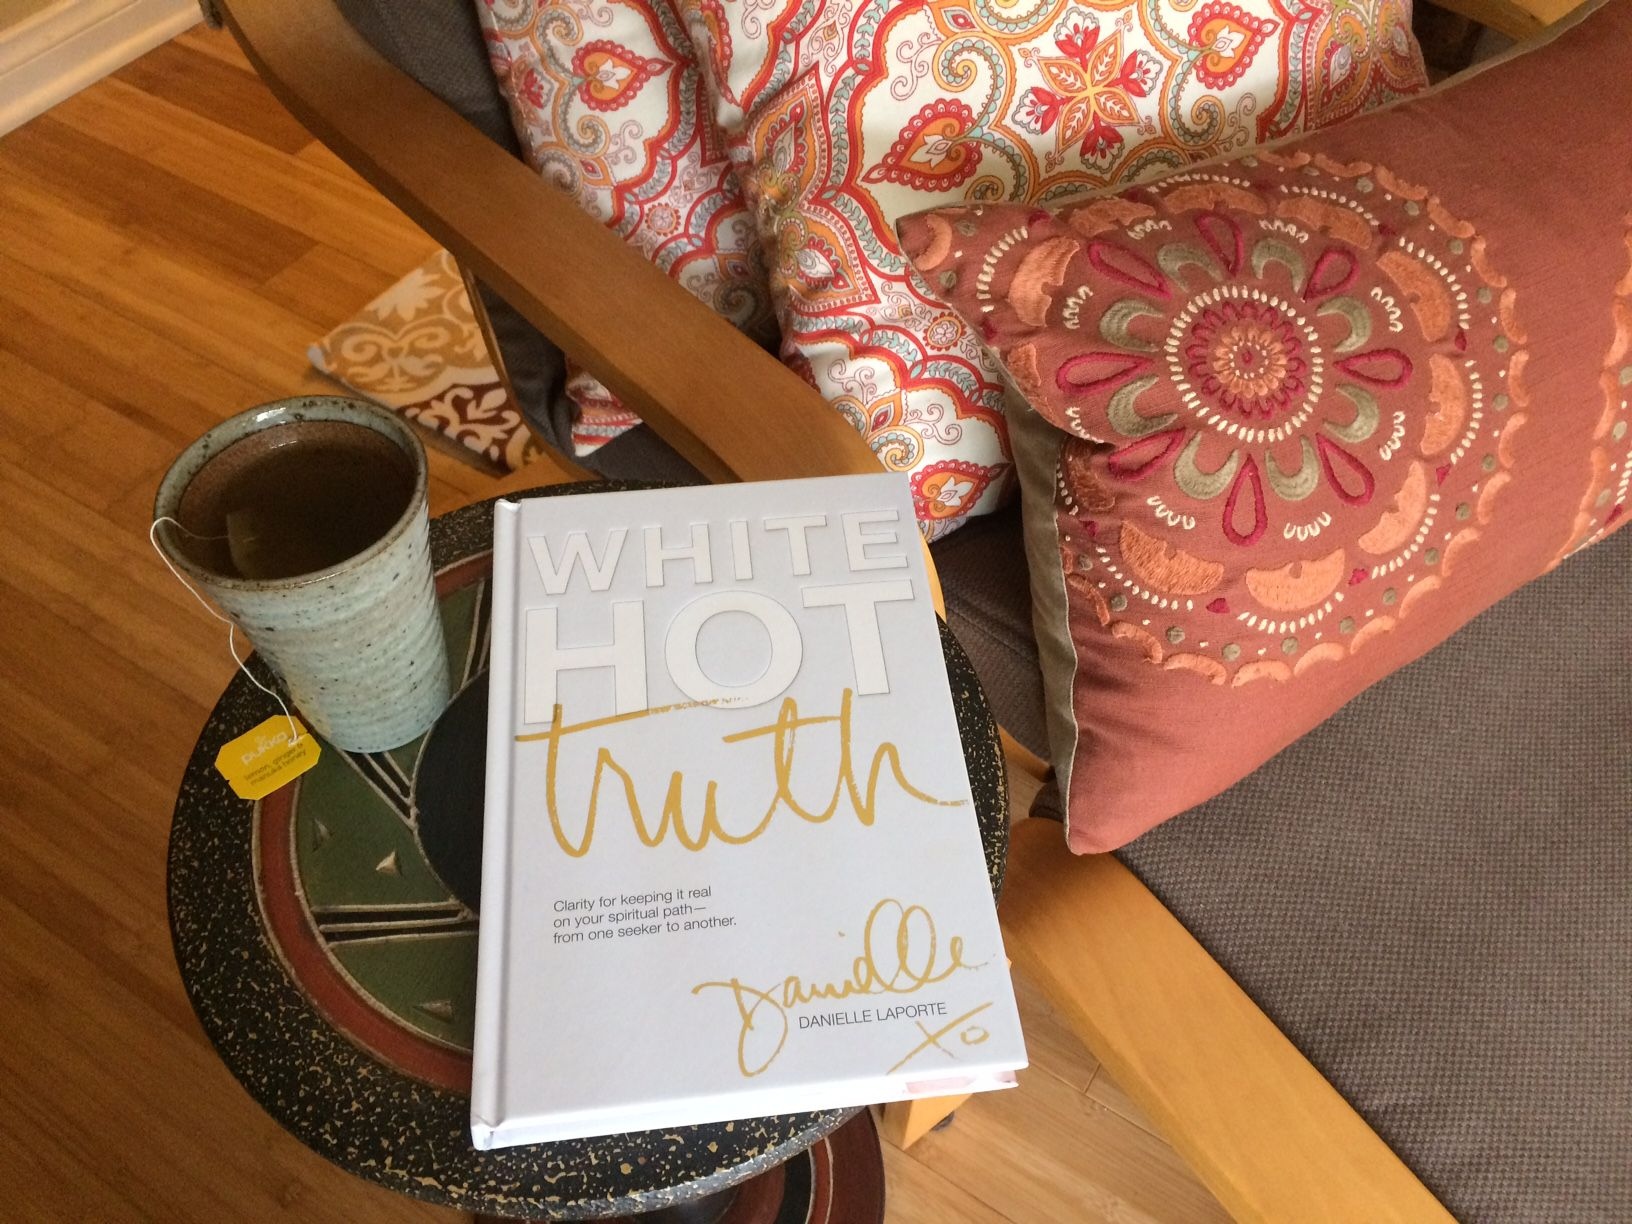 White Hot Truth by Danielle LaPorte: All Real. All Love. Fierce and Funny. A Fiery Light for Soul Seekers